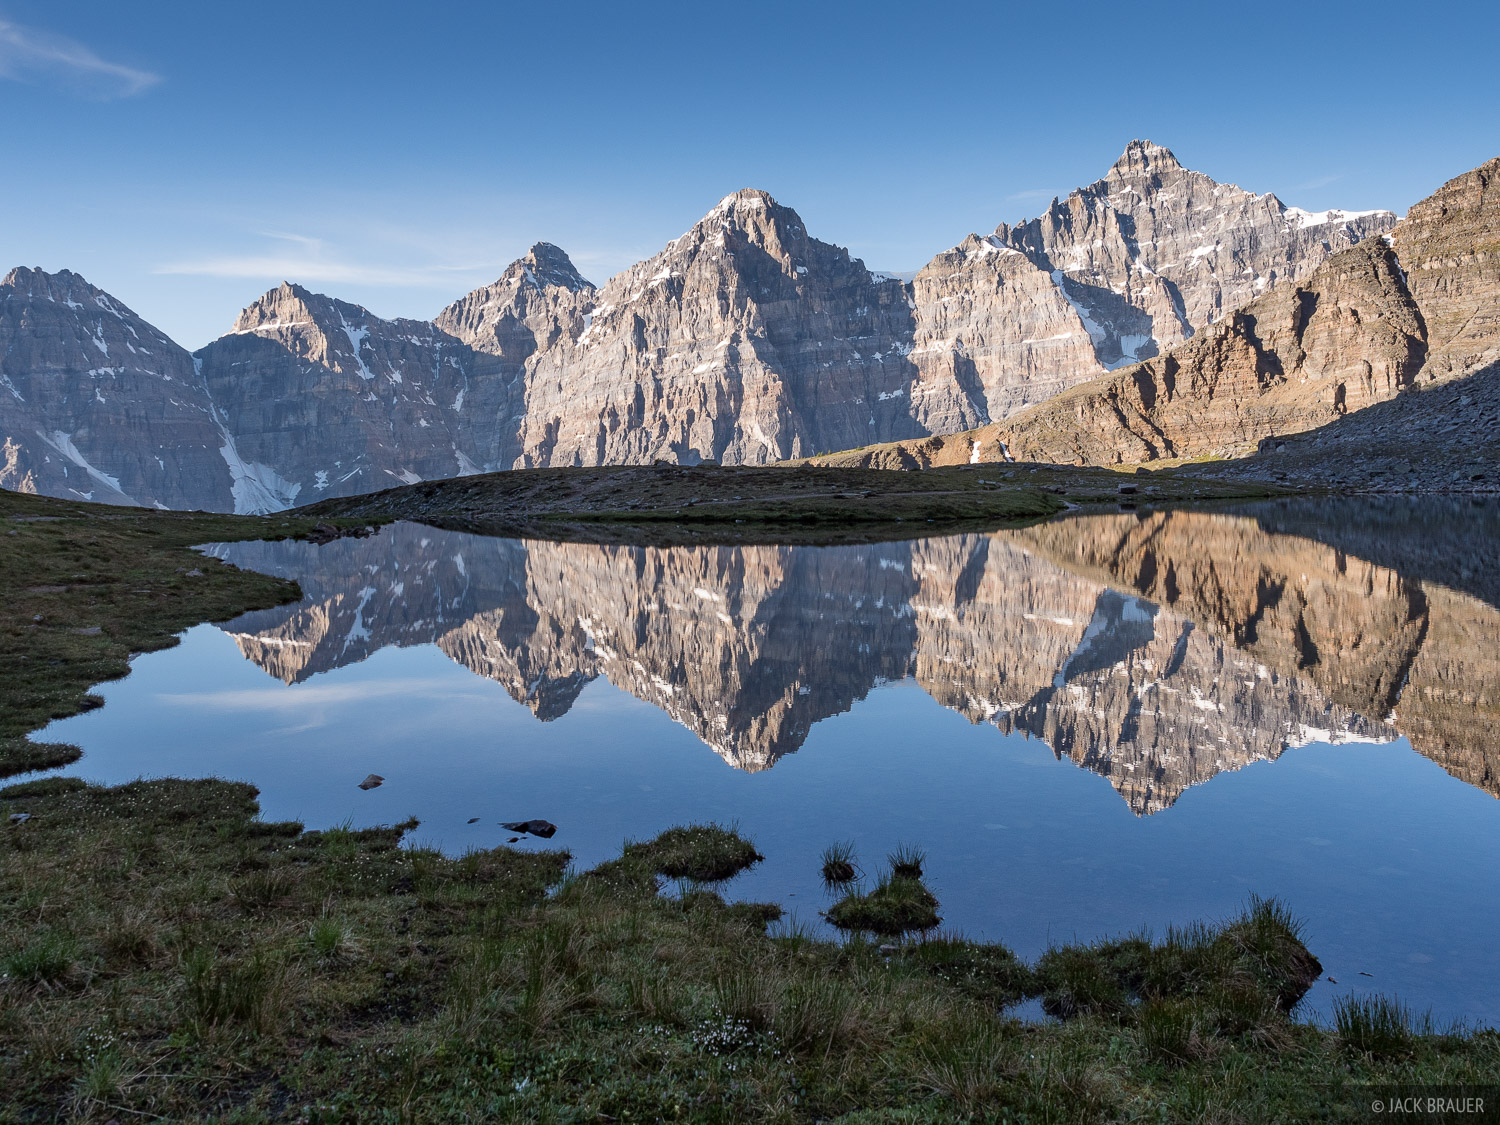 The Valley of the Ten Peaks reflecting in a tarn.